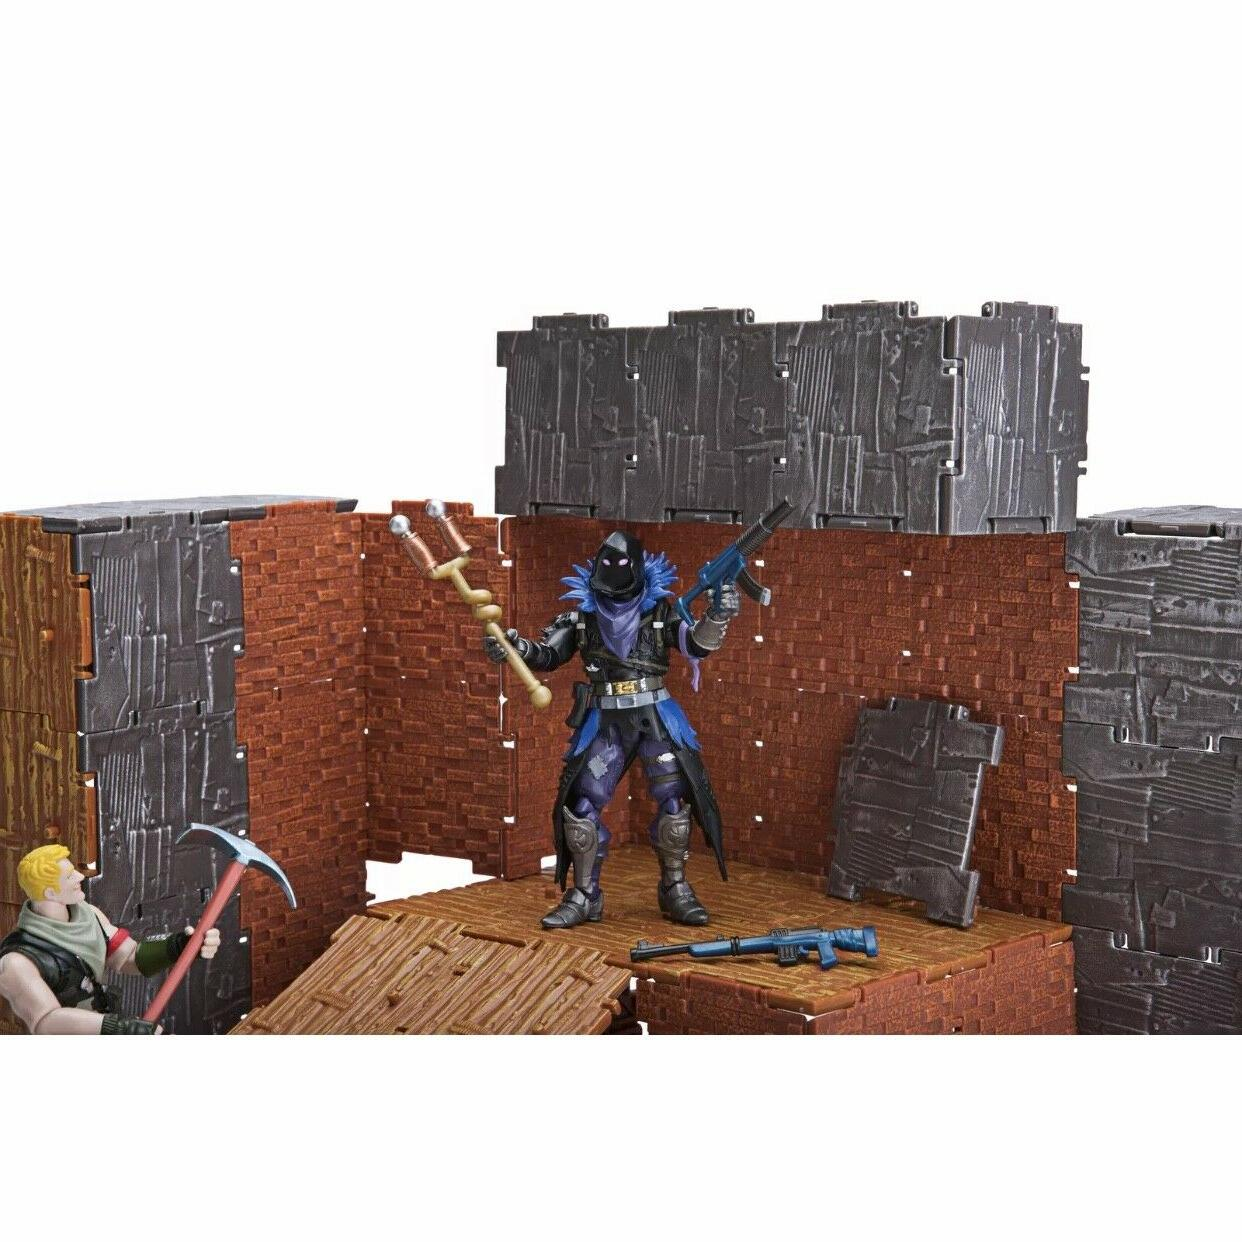 Fortnite Turbo 2 Action Figure Jonesy & Raven w Accessories